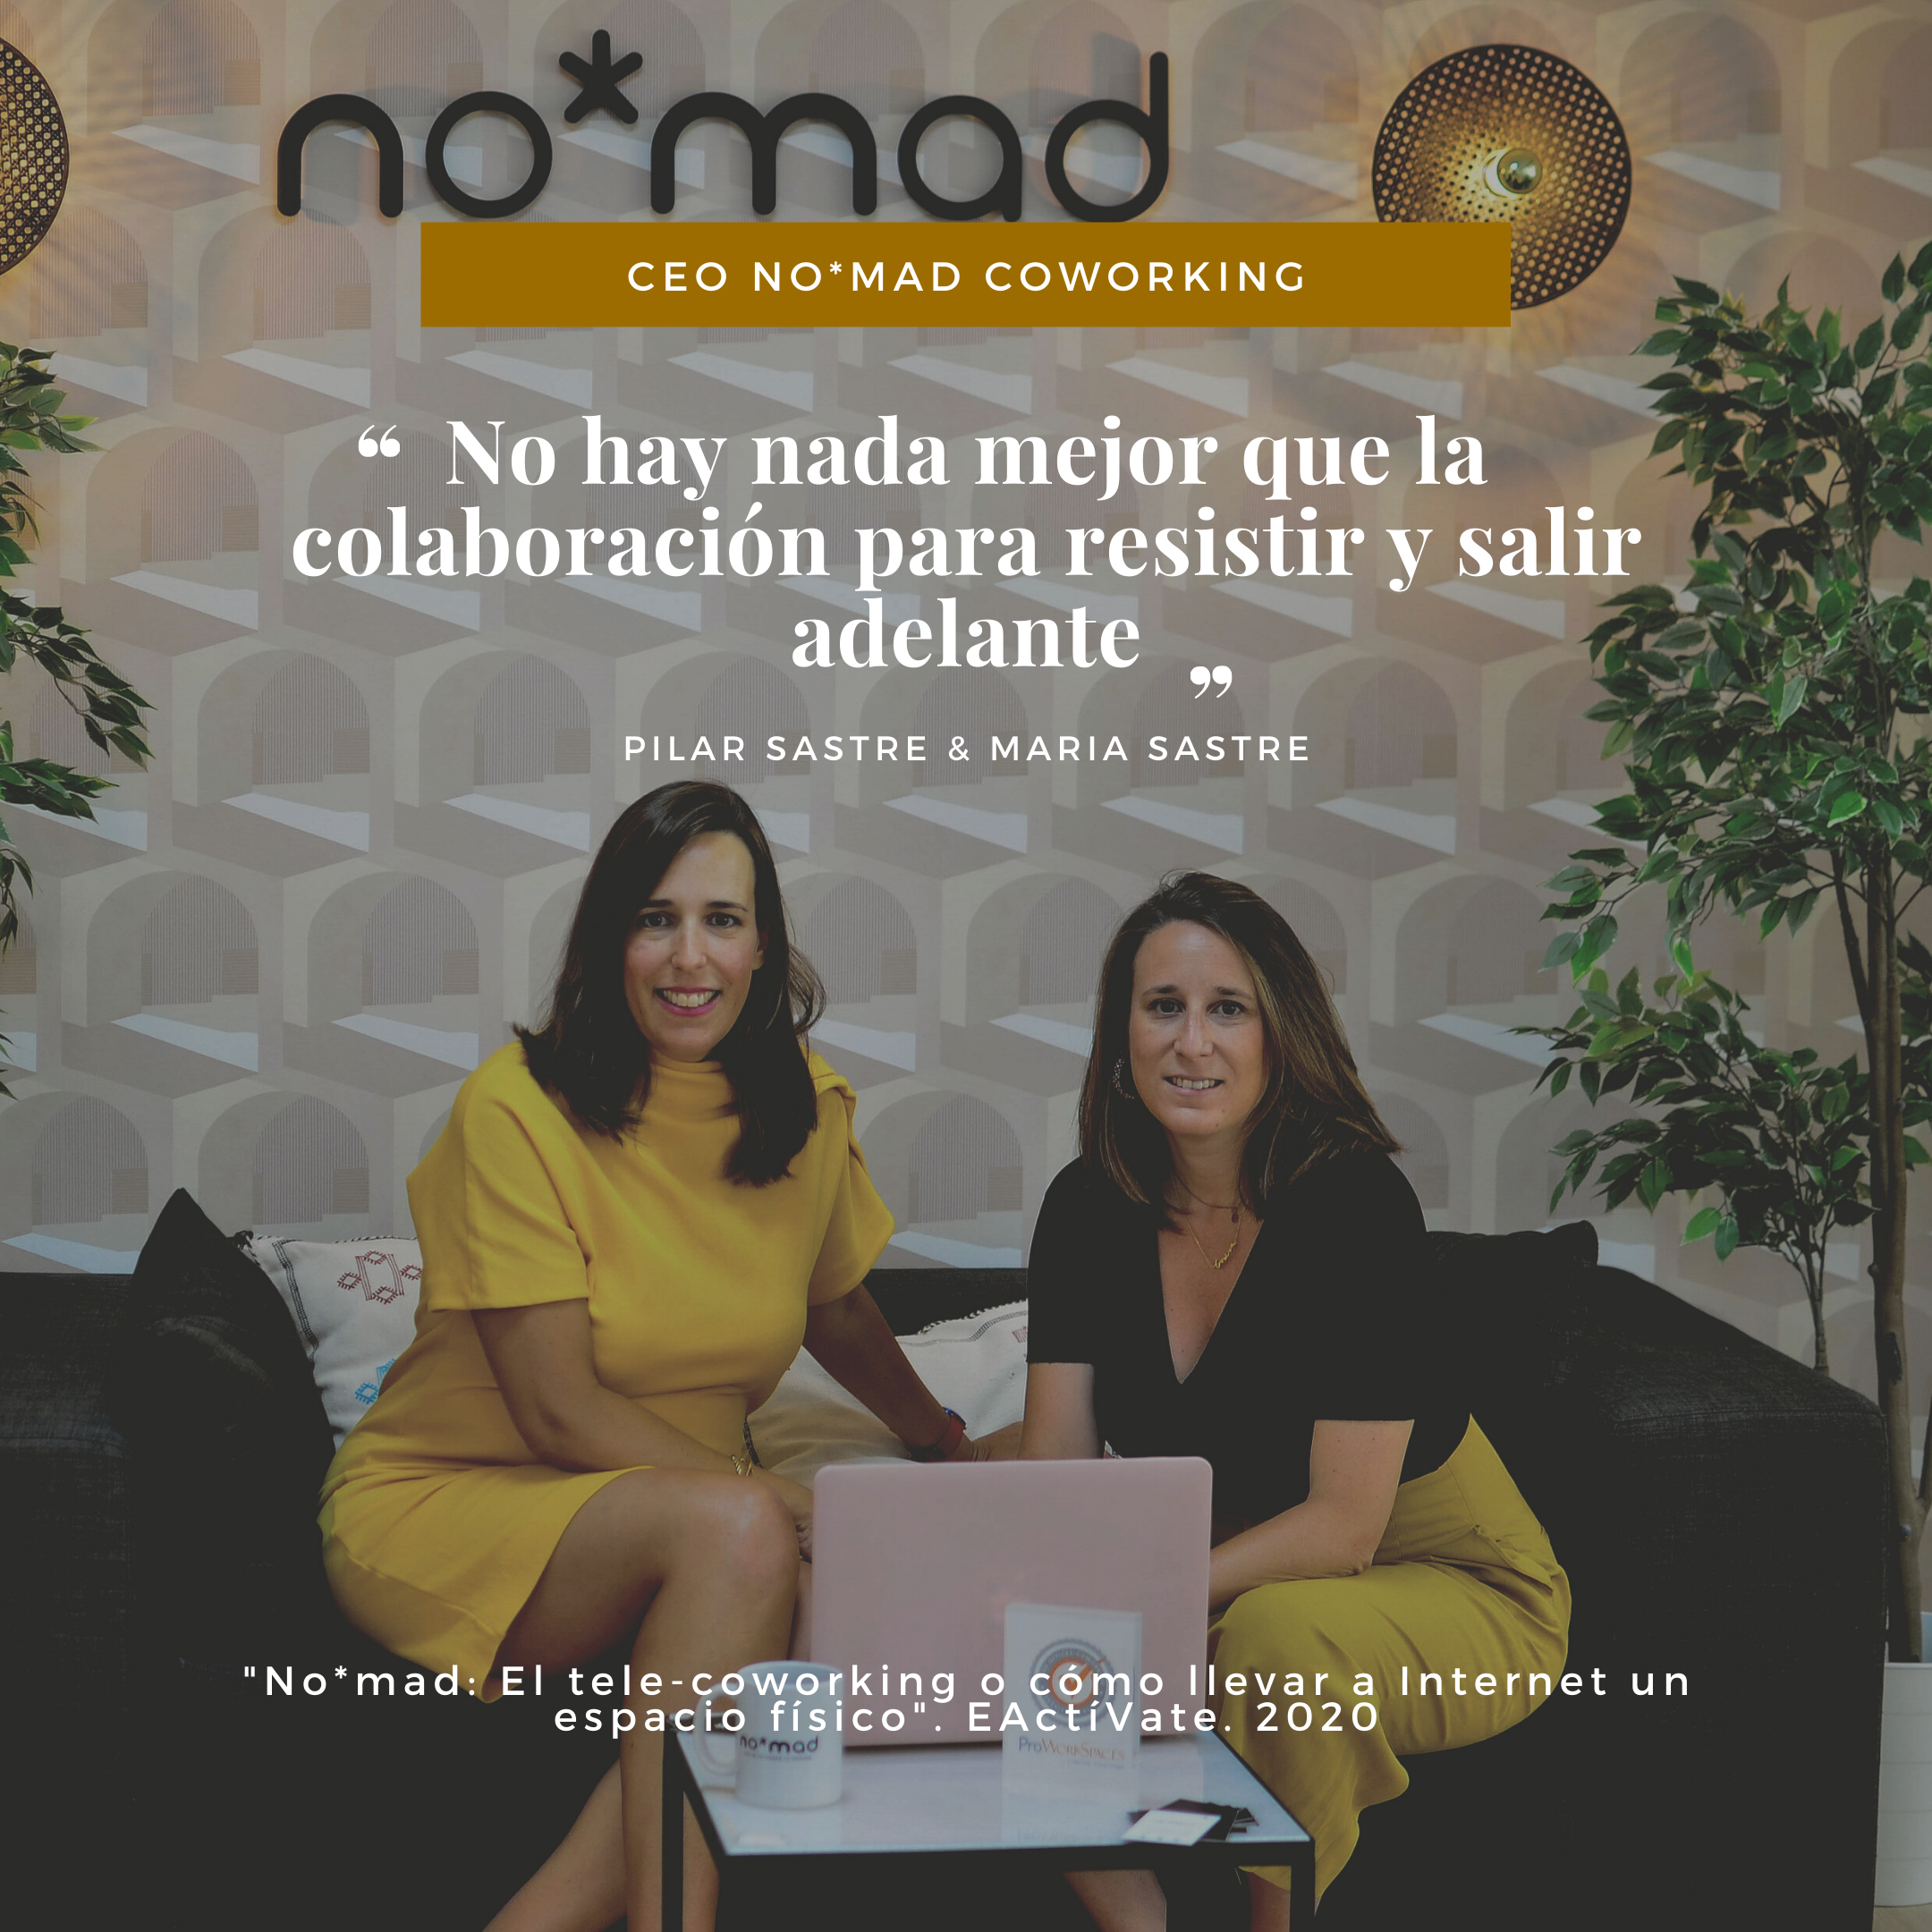 Historia del telecoworking no*mad